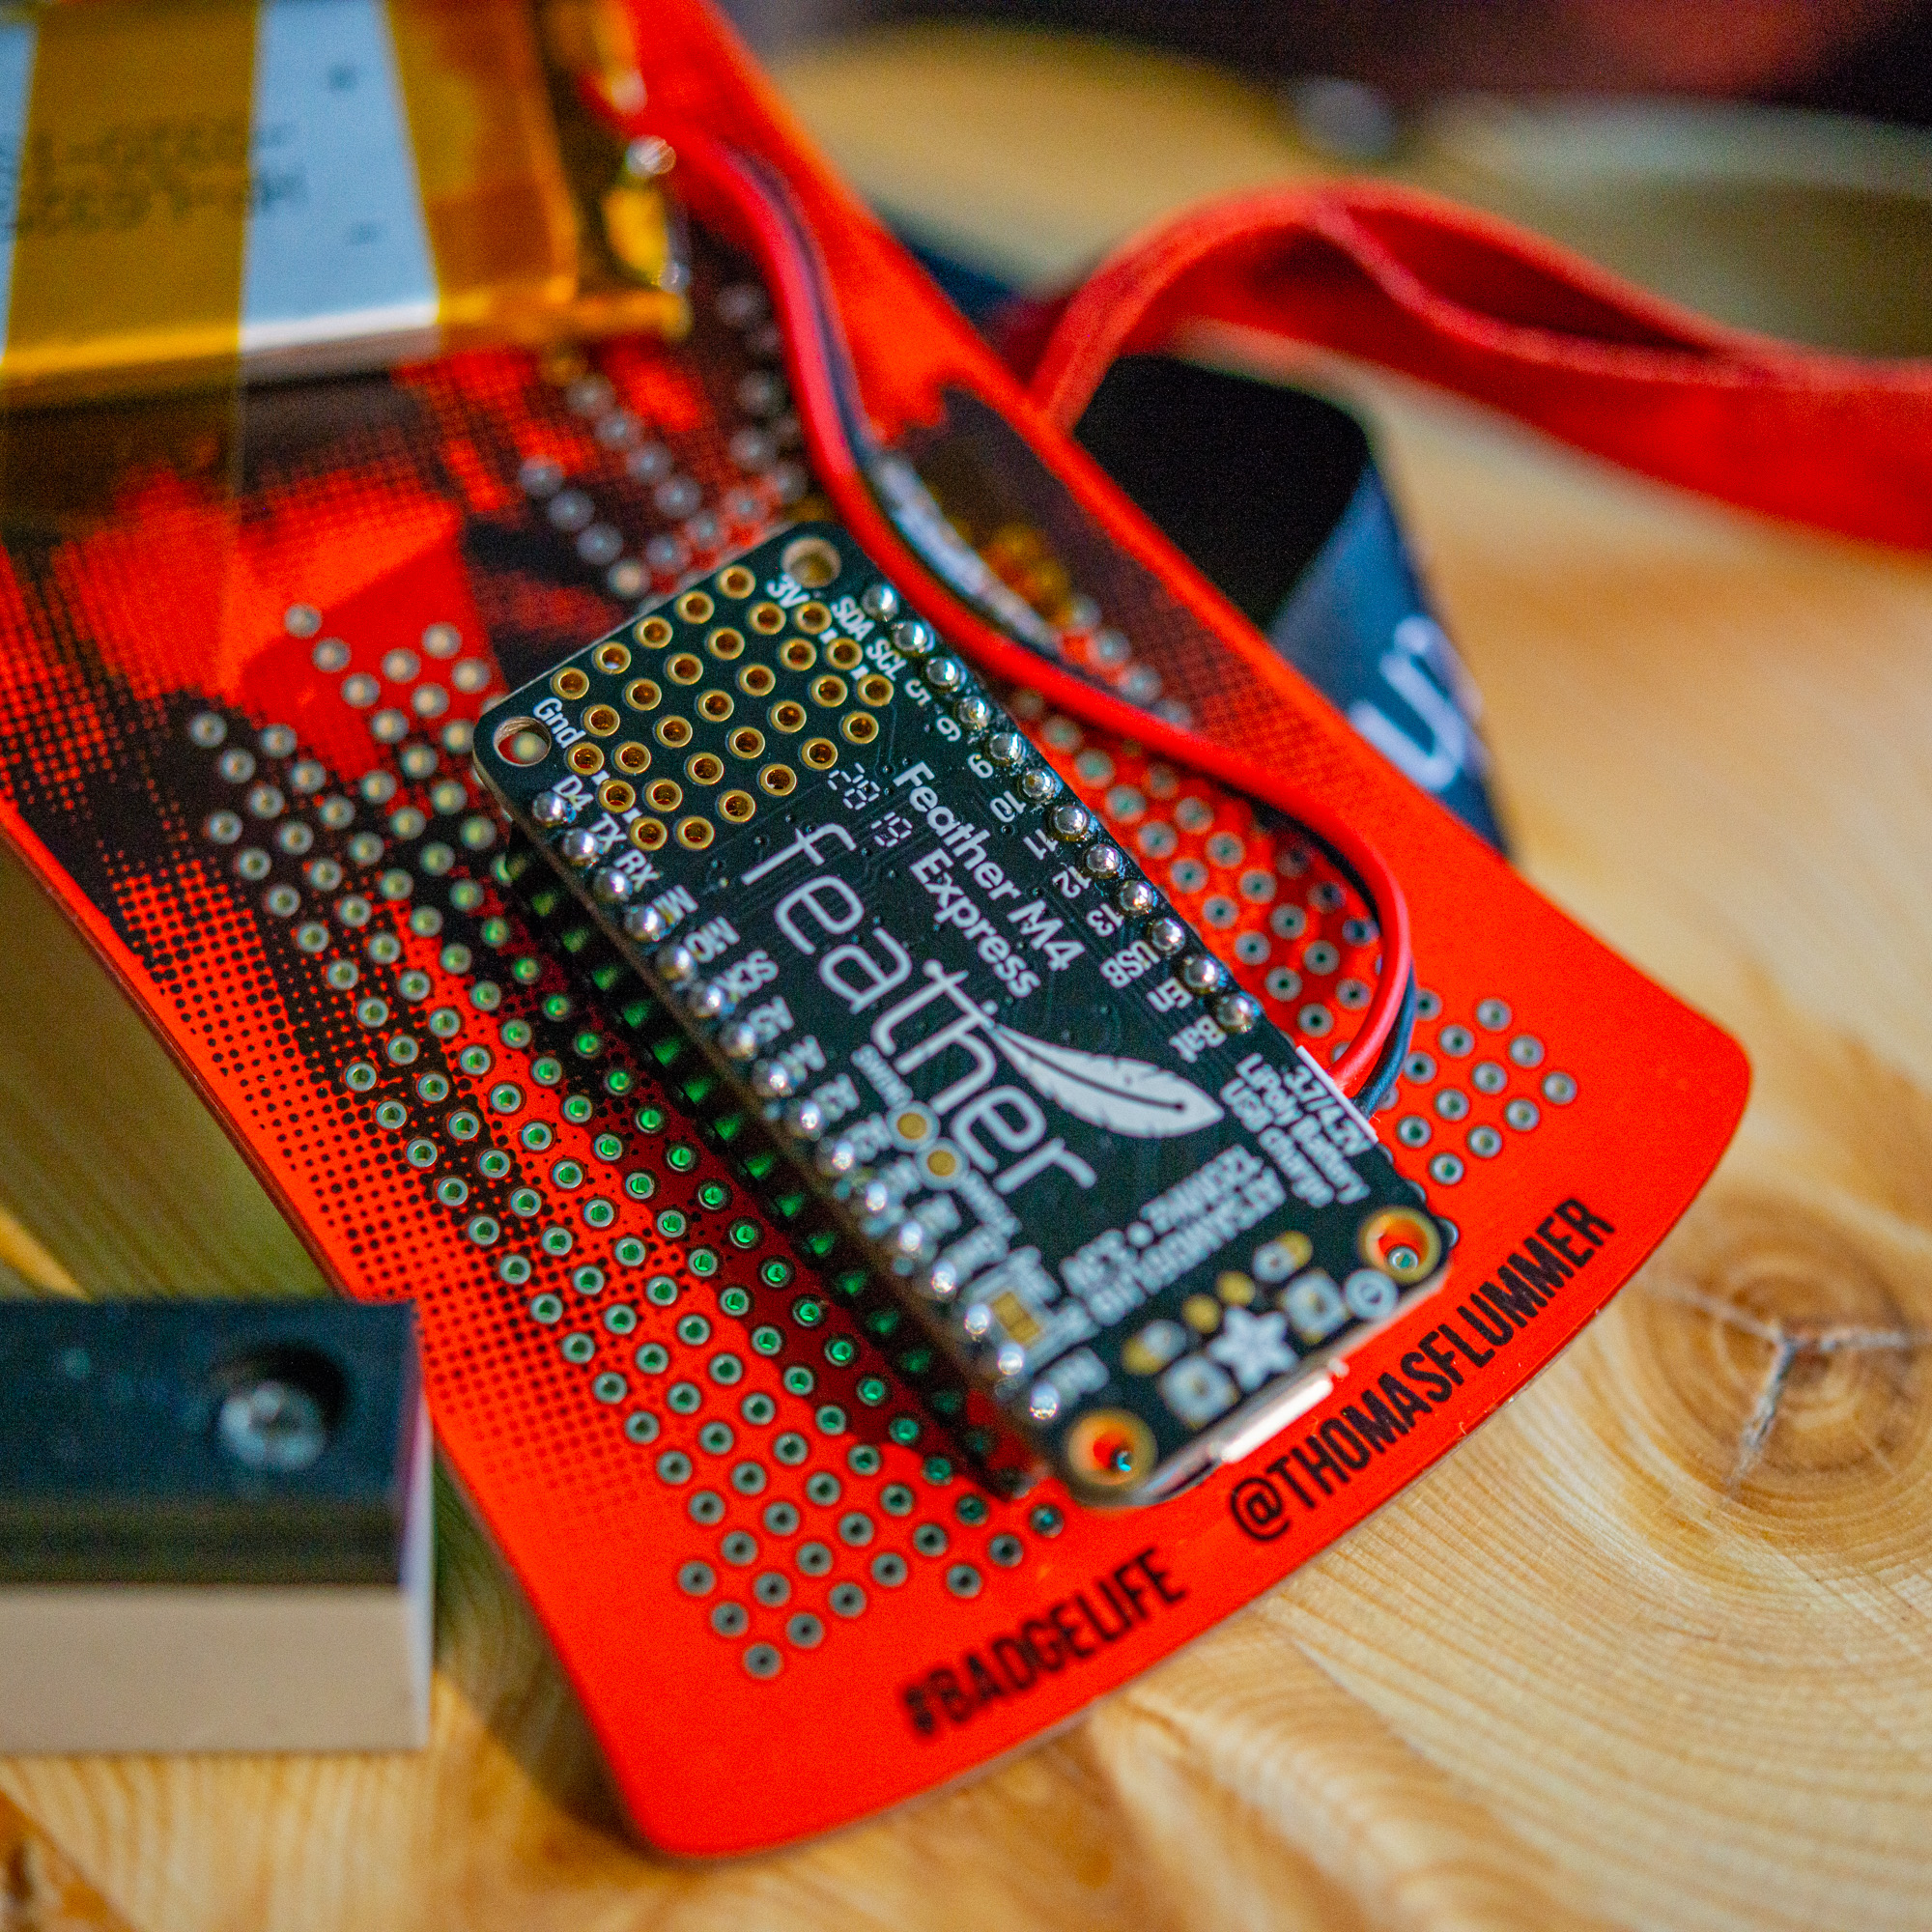 36c3 badge with Adafruit Feather M4 Express